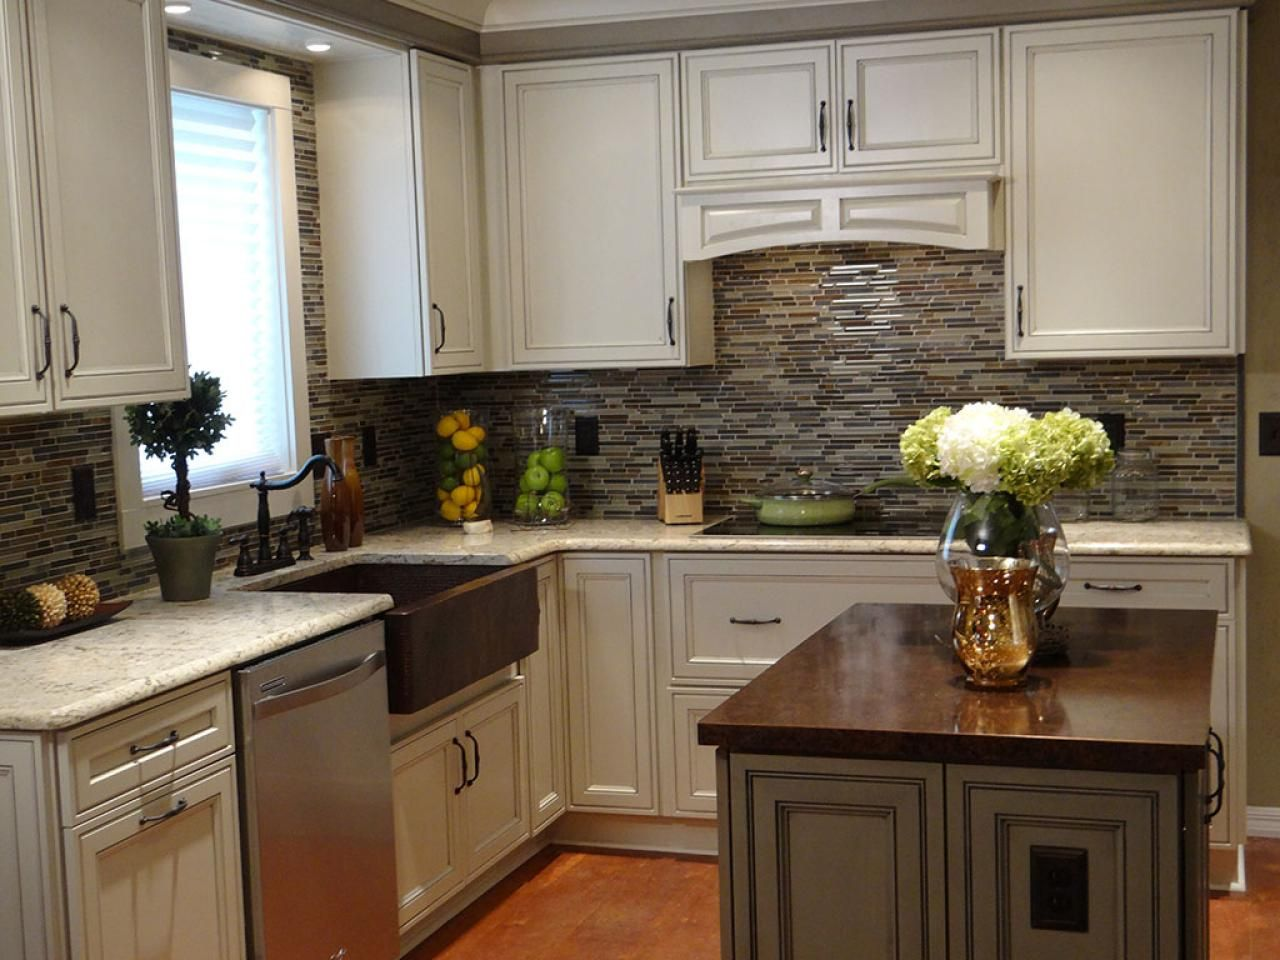 20 small kitchen makeovers by hgtv hosts kitchen designs choose kitchen layouts remodeling materials hgtv